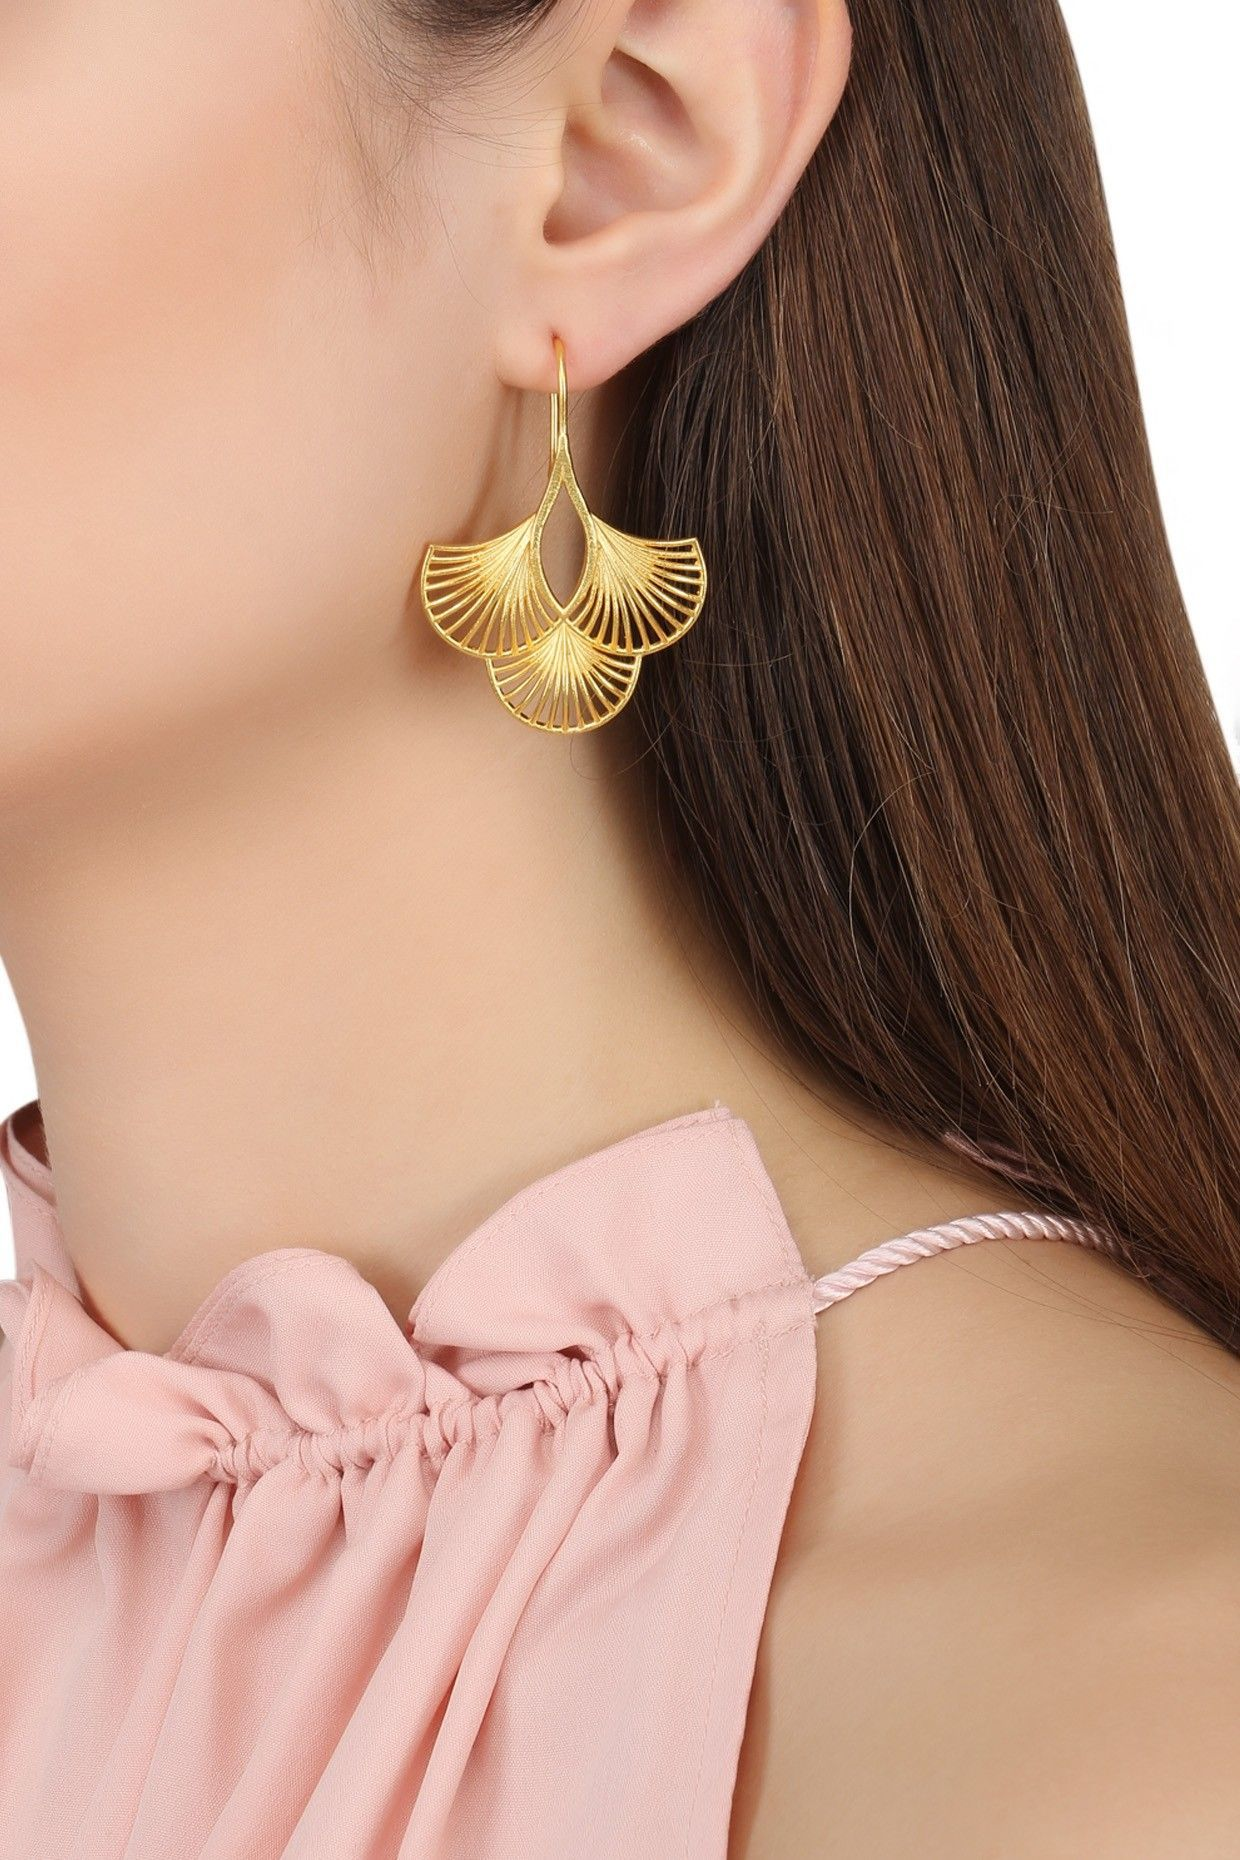 Gold Plated Three Petal Earrings. Shop now! ZARIIN Gold Plated Three Petal Earrings. Shop now!